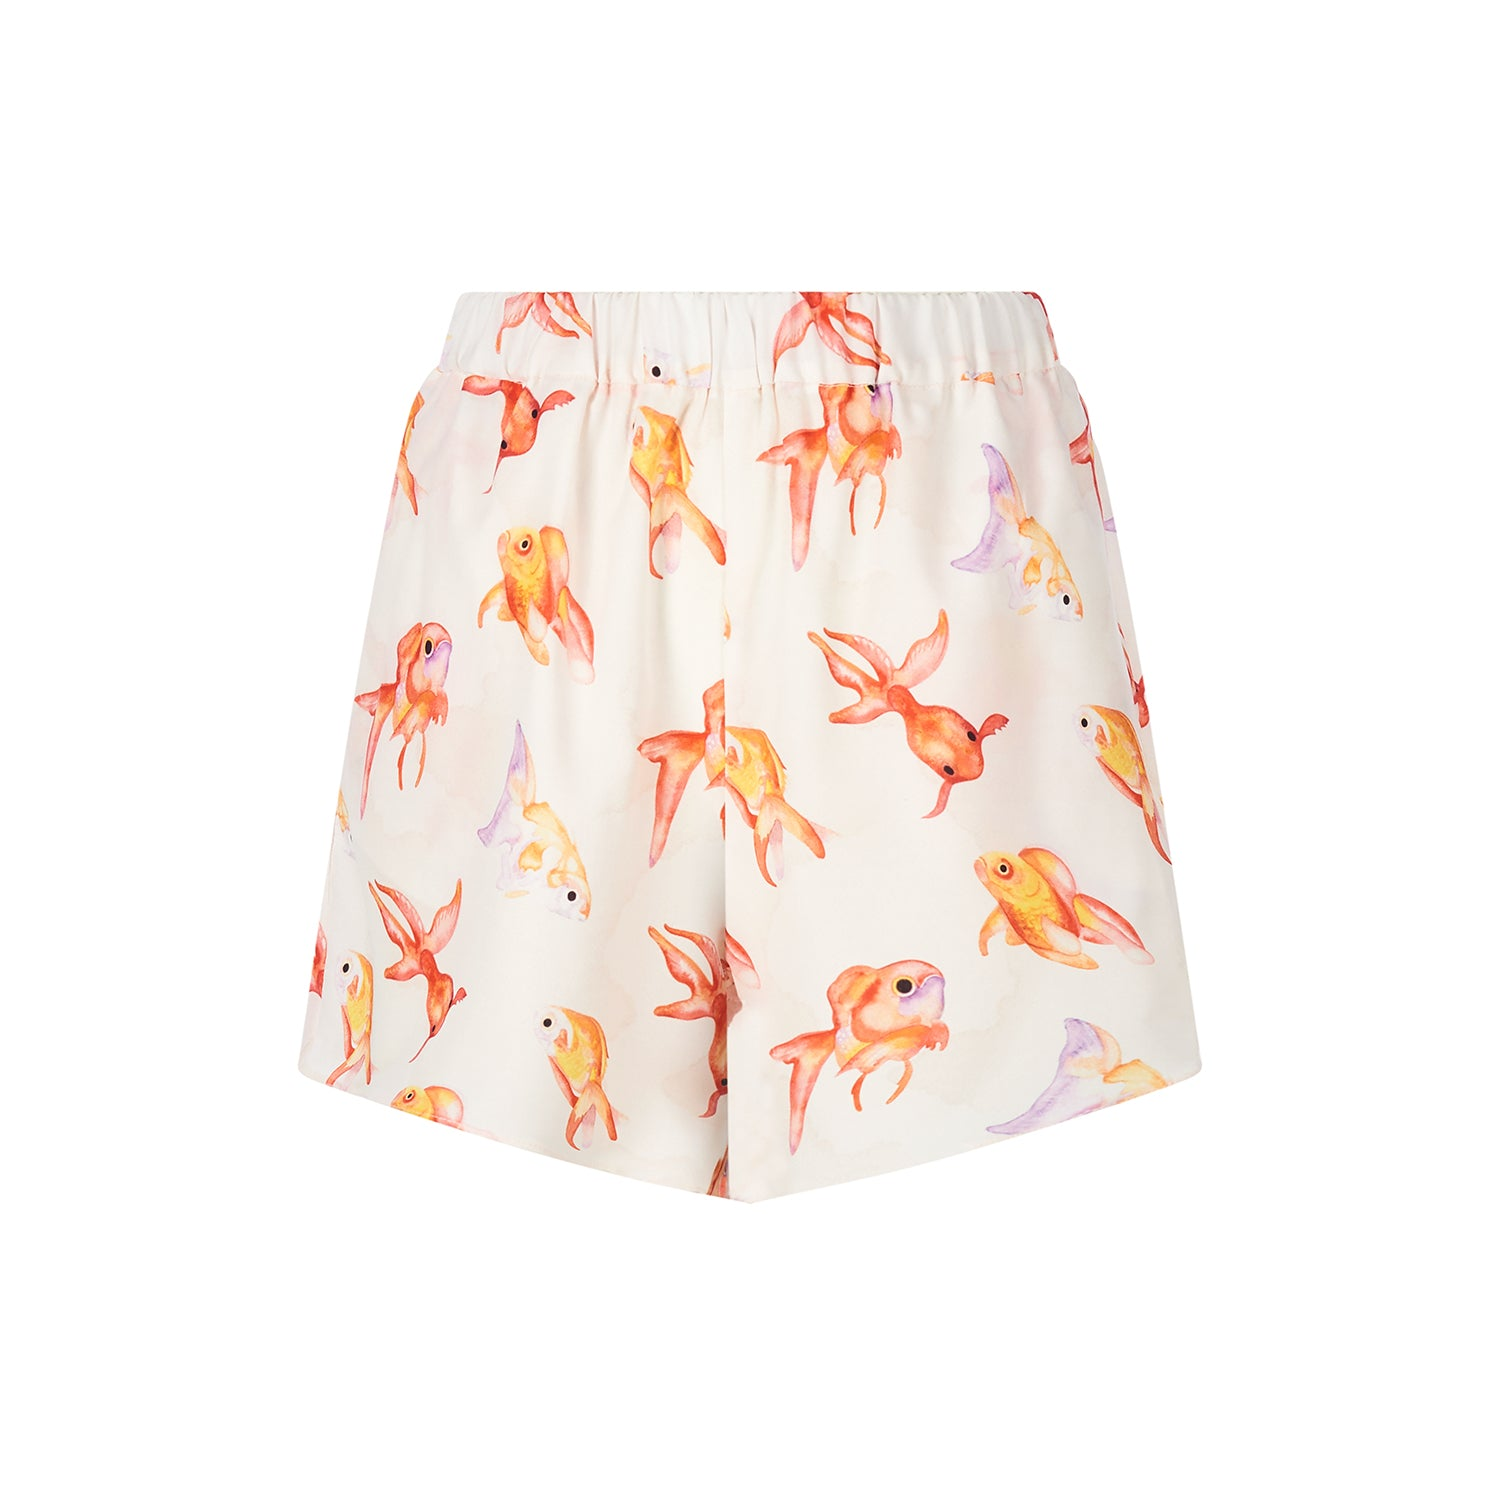 Ivory goldfish shorts featuring a pretty hand painted fish design by Louise Coleman